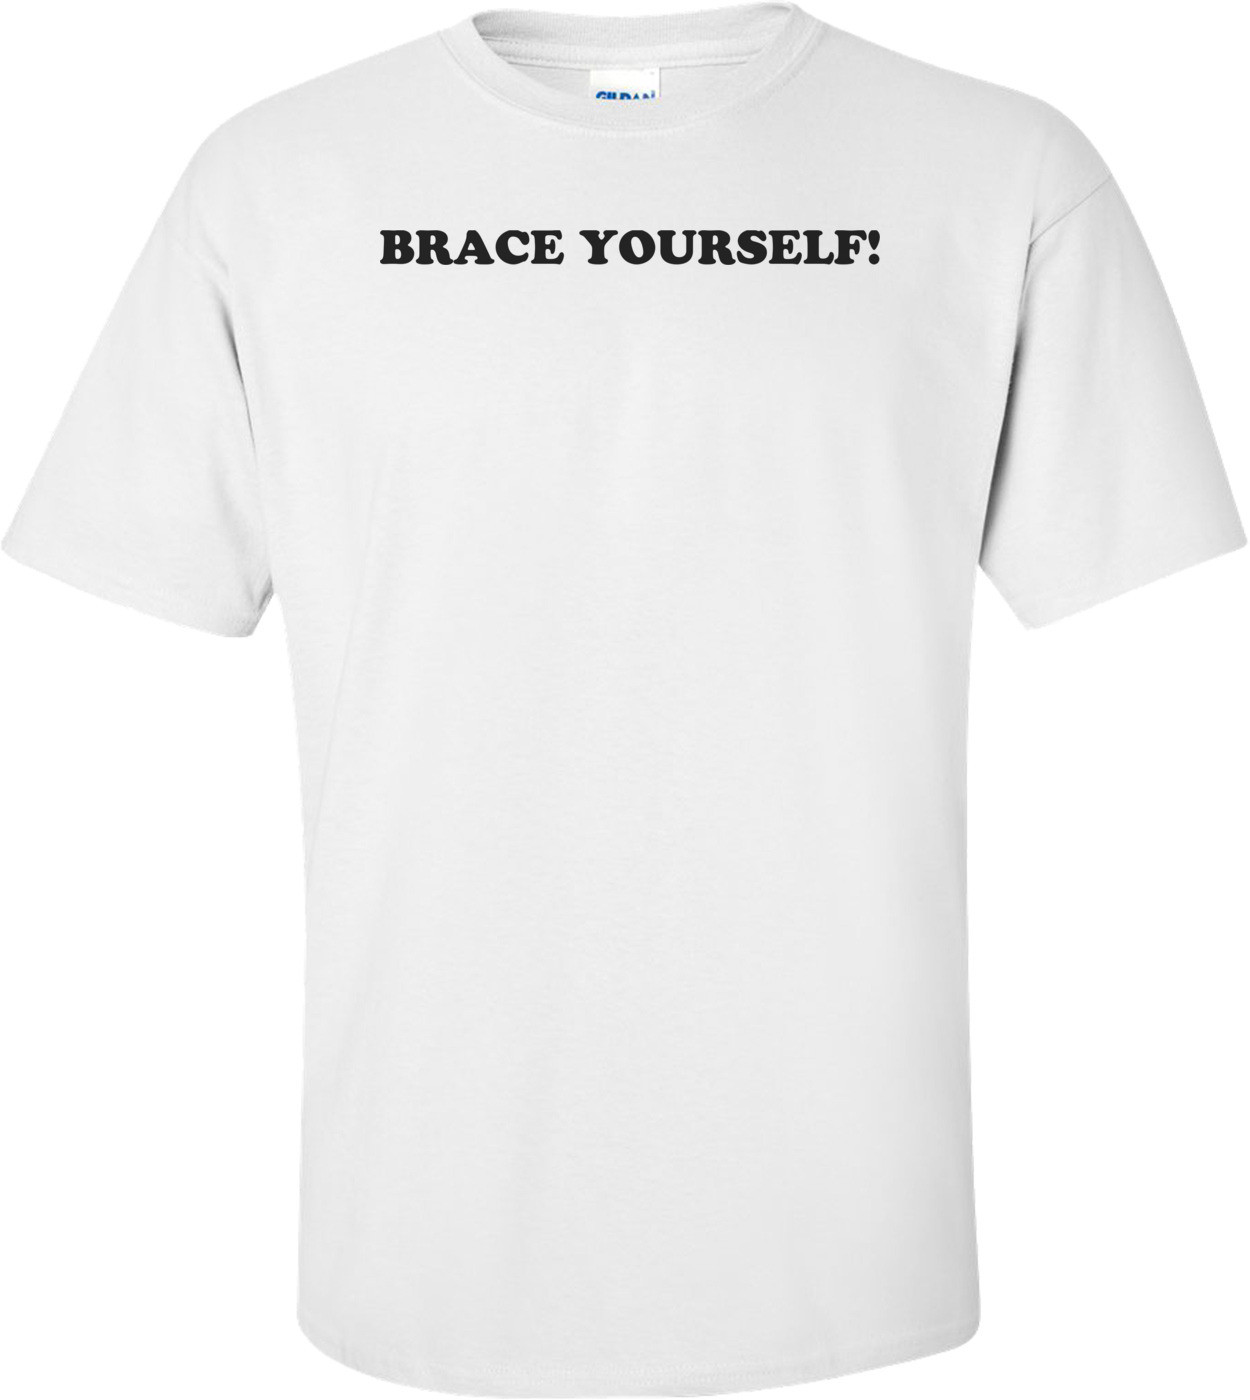 BRACE YOURSELF! T-Shirt